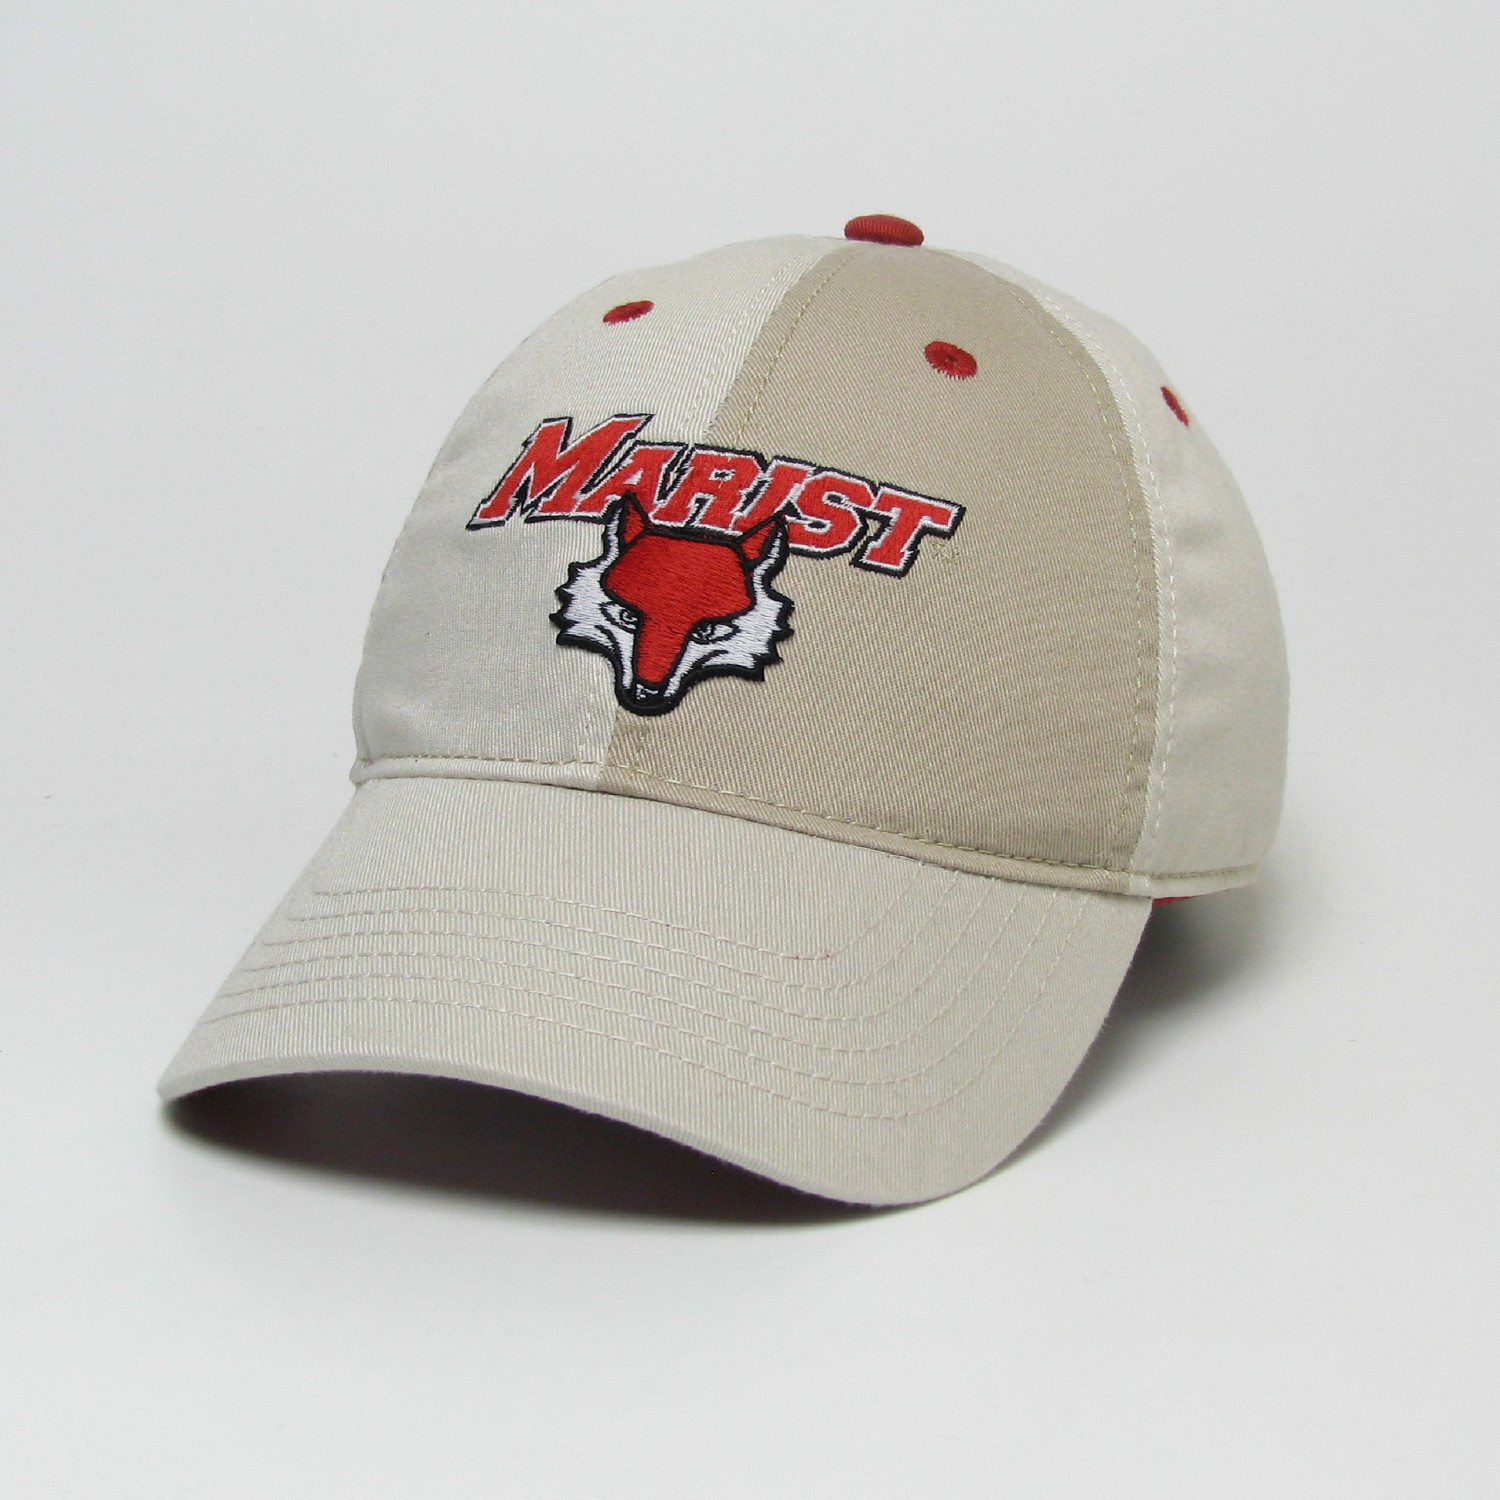 Marist College Legacy Washed Twill Unstructured Adjustable Hat